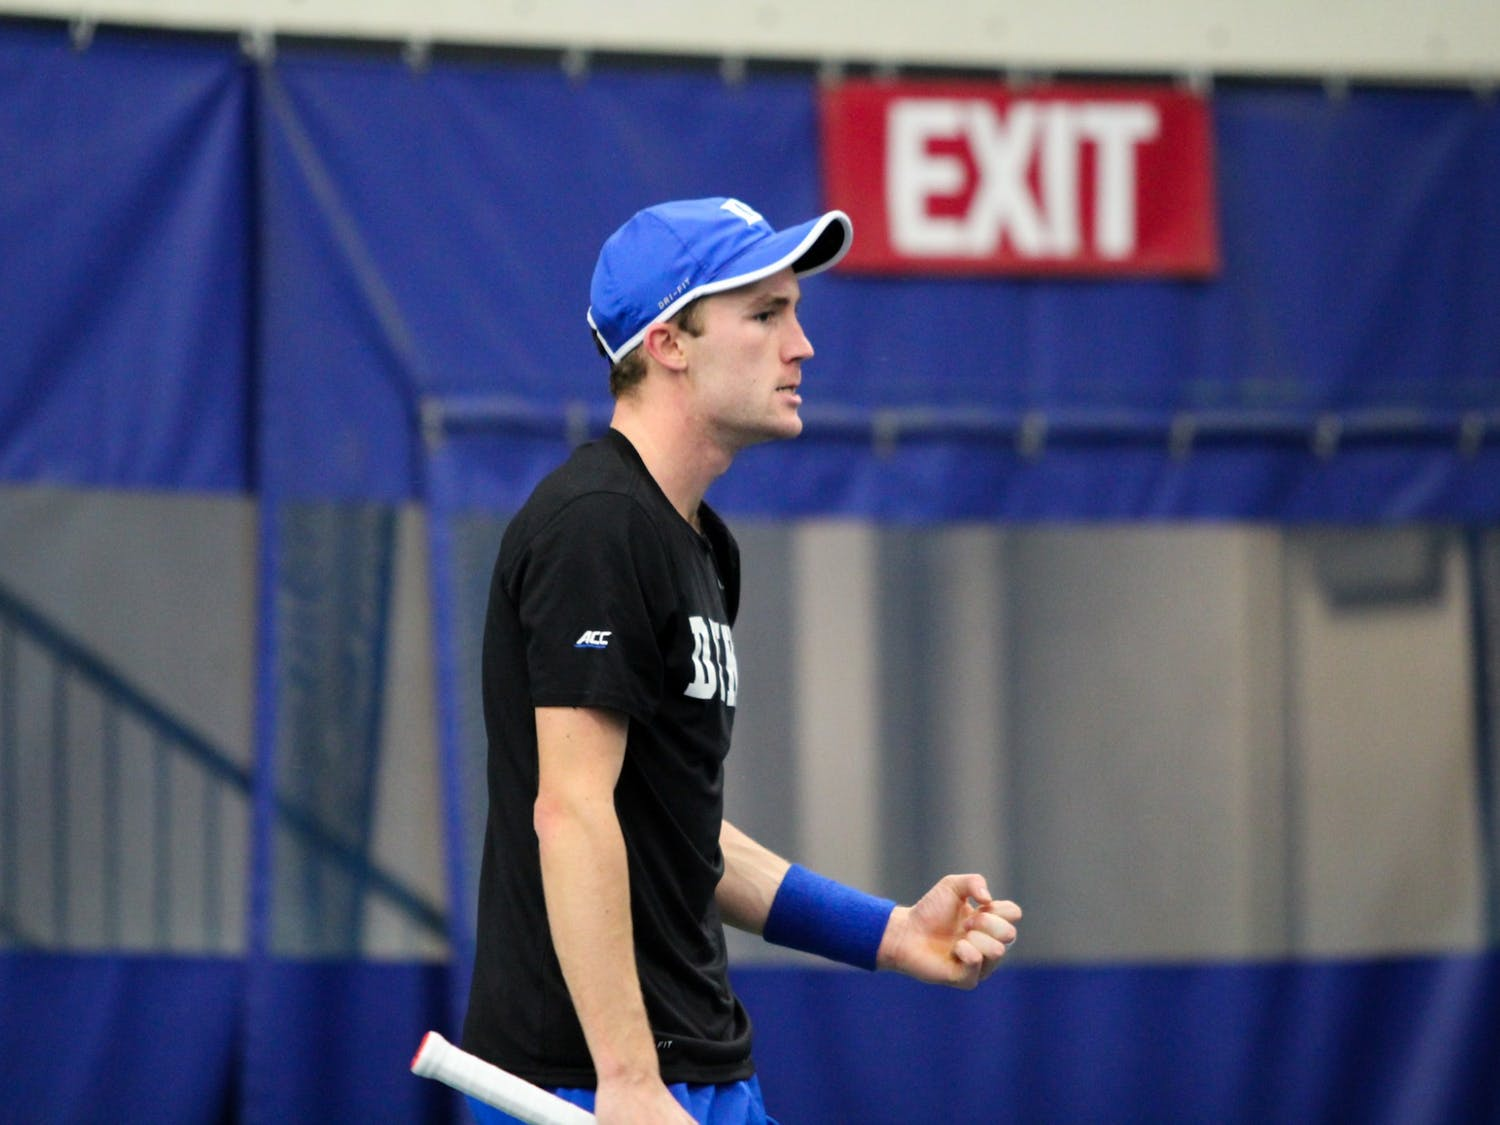 Freshman Andrew Dale and the Blue Devils seem to have finally found their footing after some early struggles.